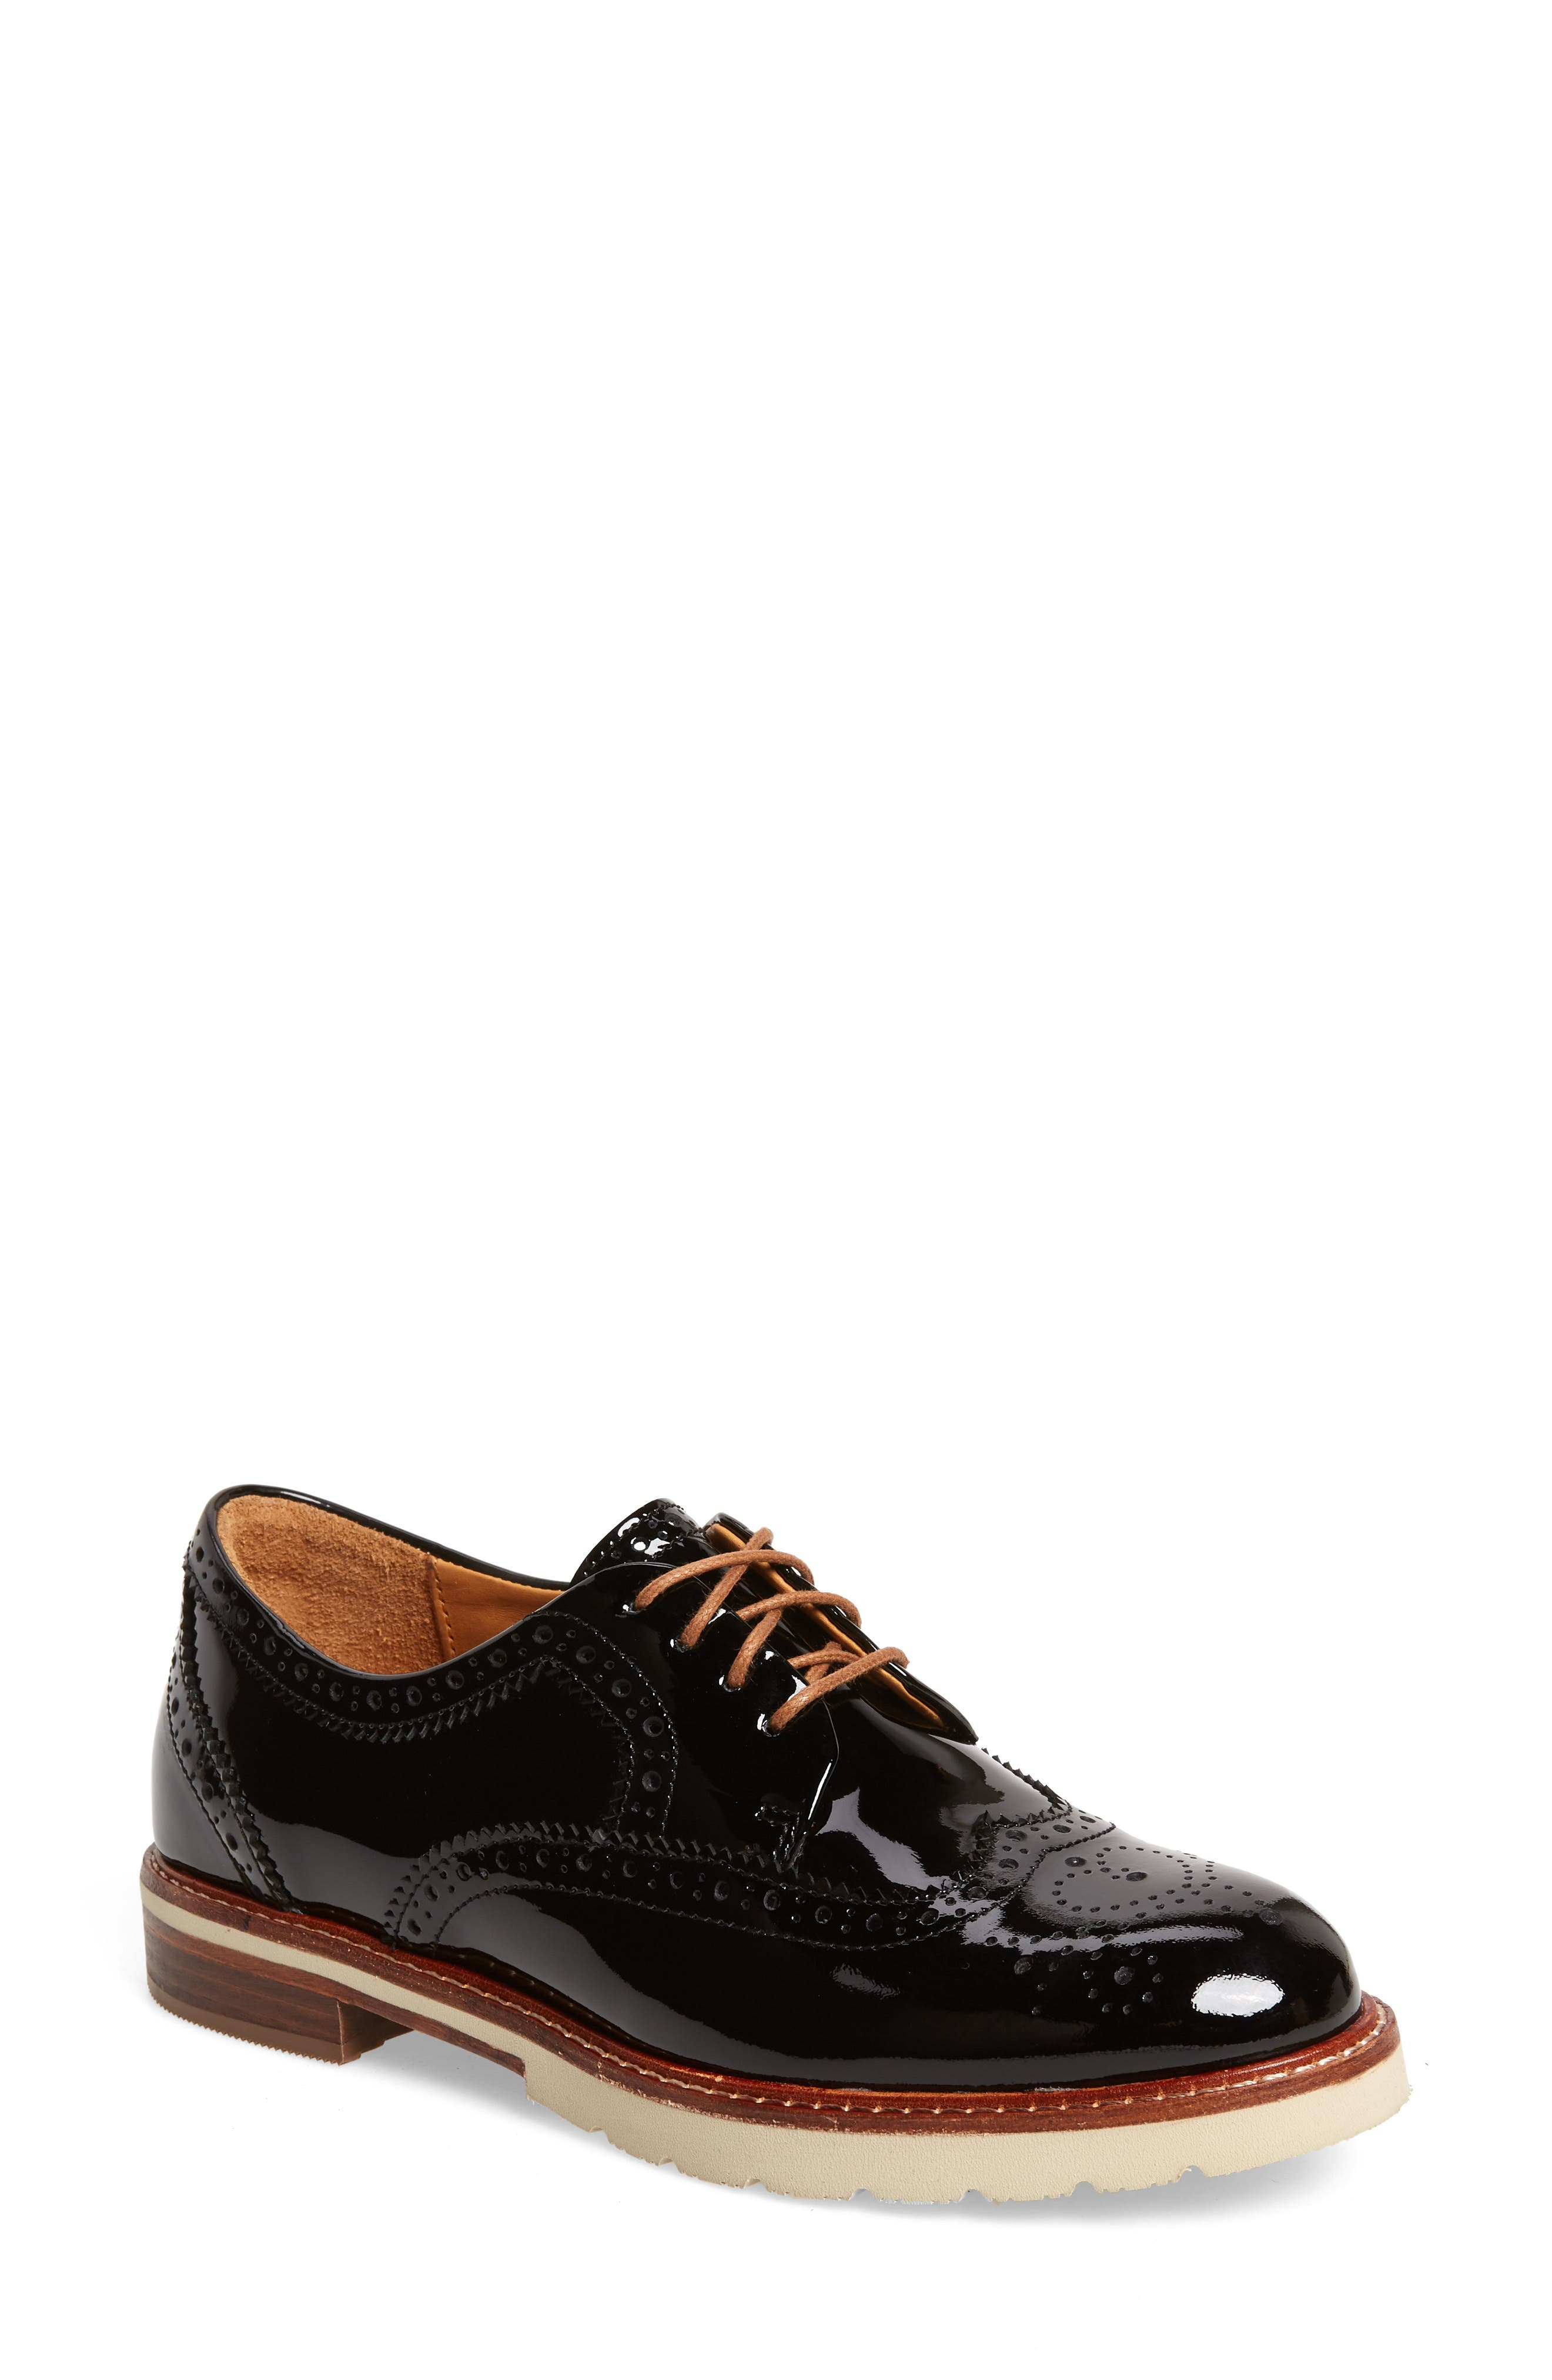 SAMUEL HUBBARD Winged Traveler Oxford, Main, color, BLACK PATENT LEATHER